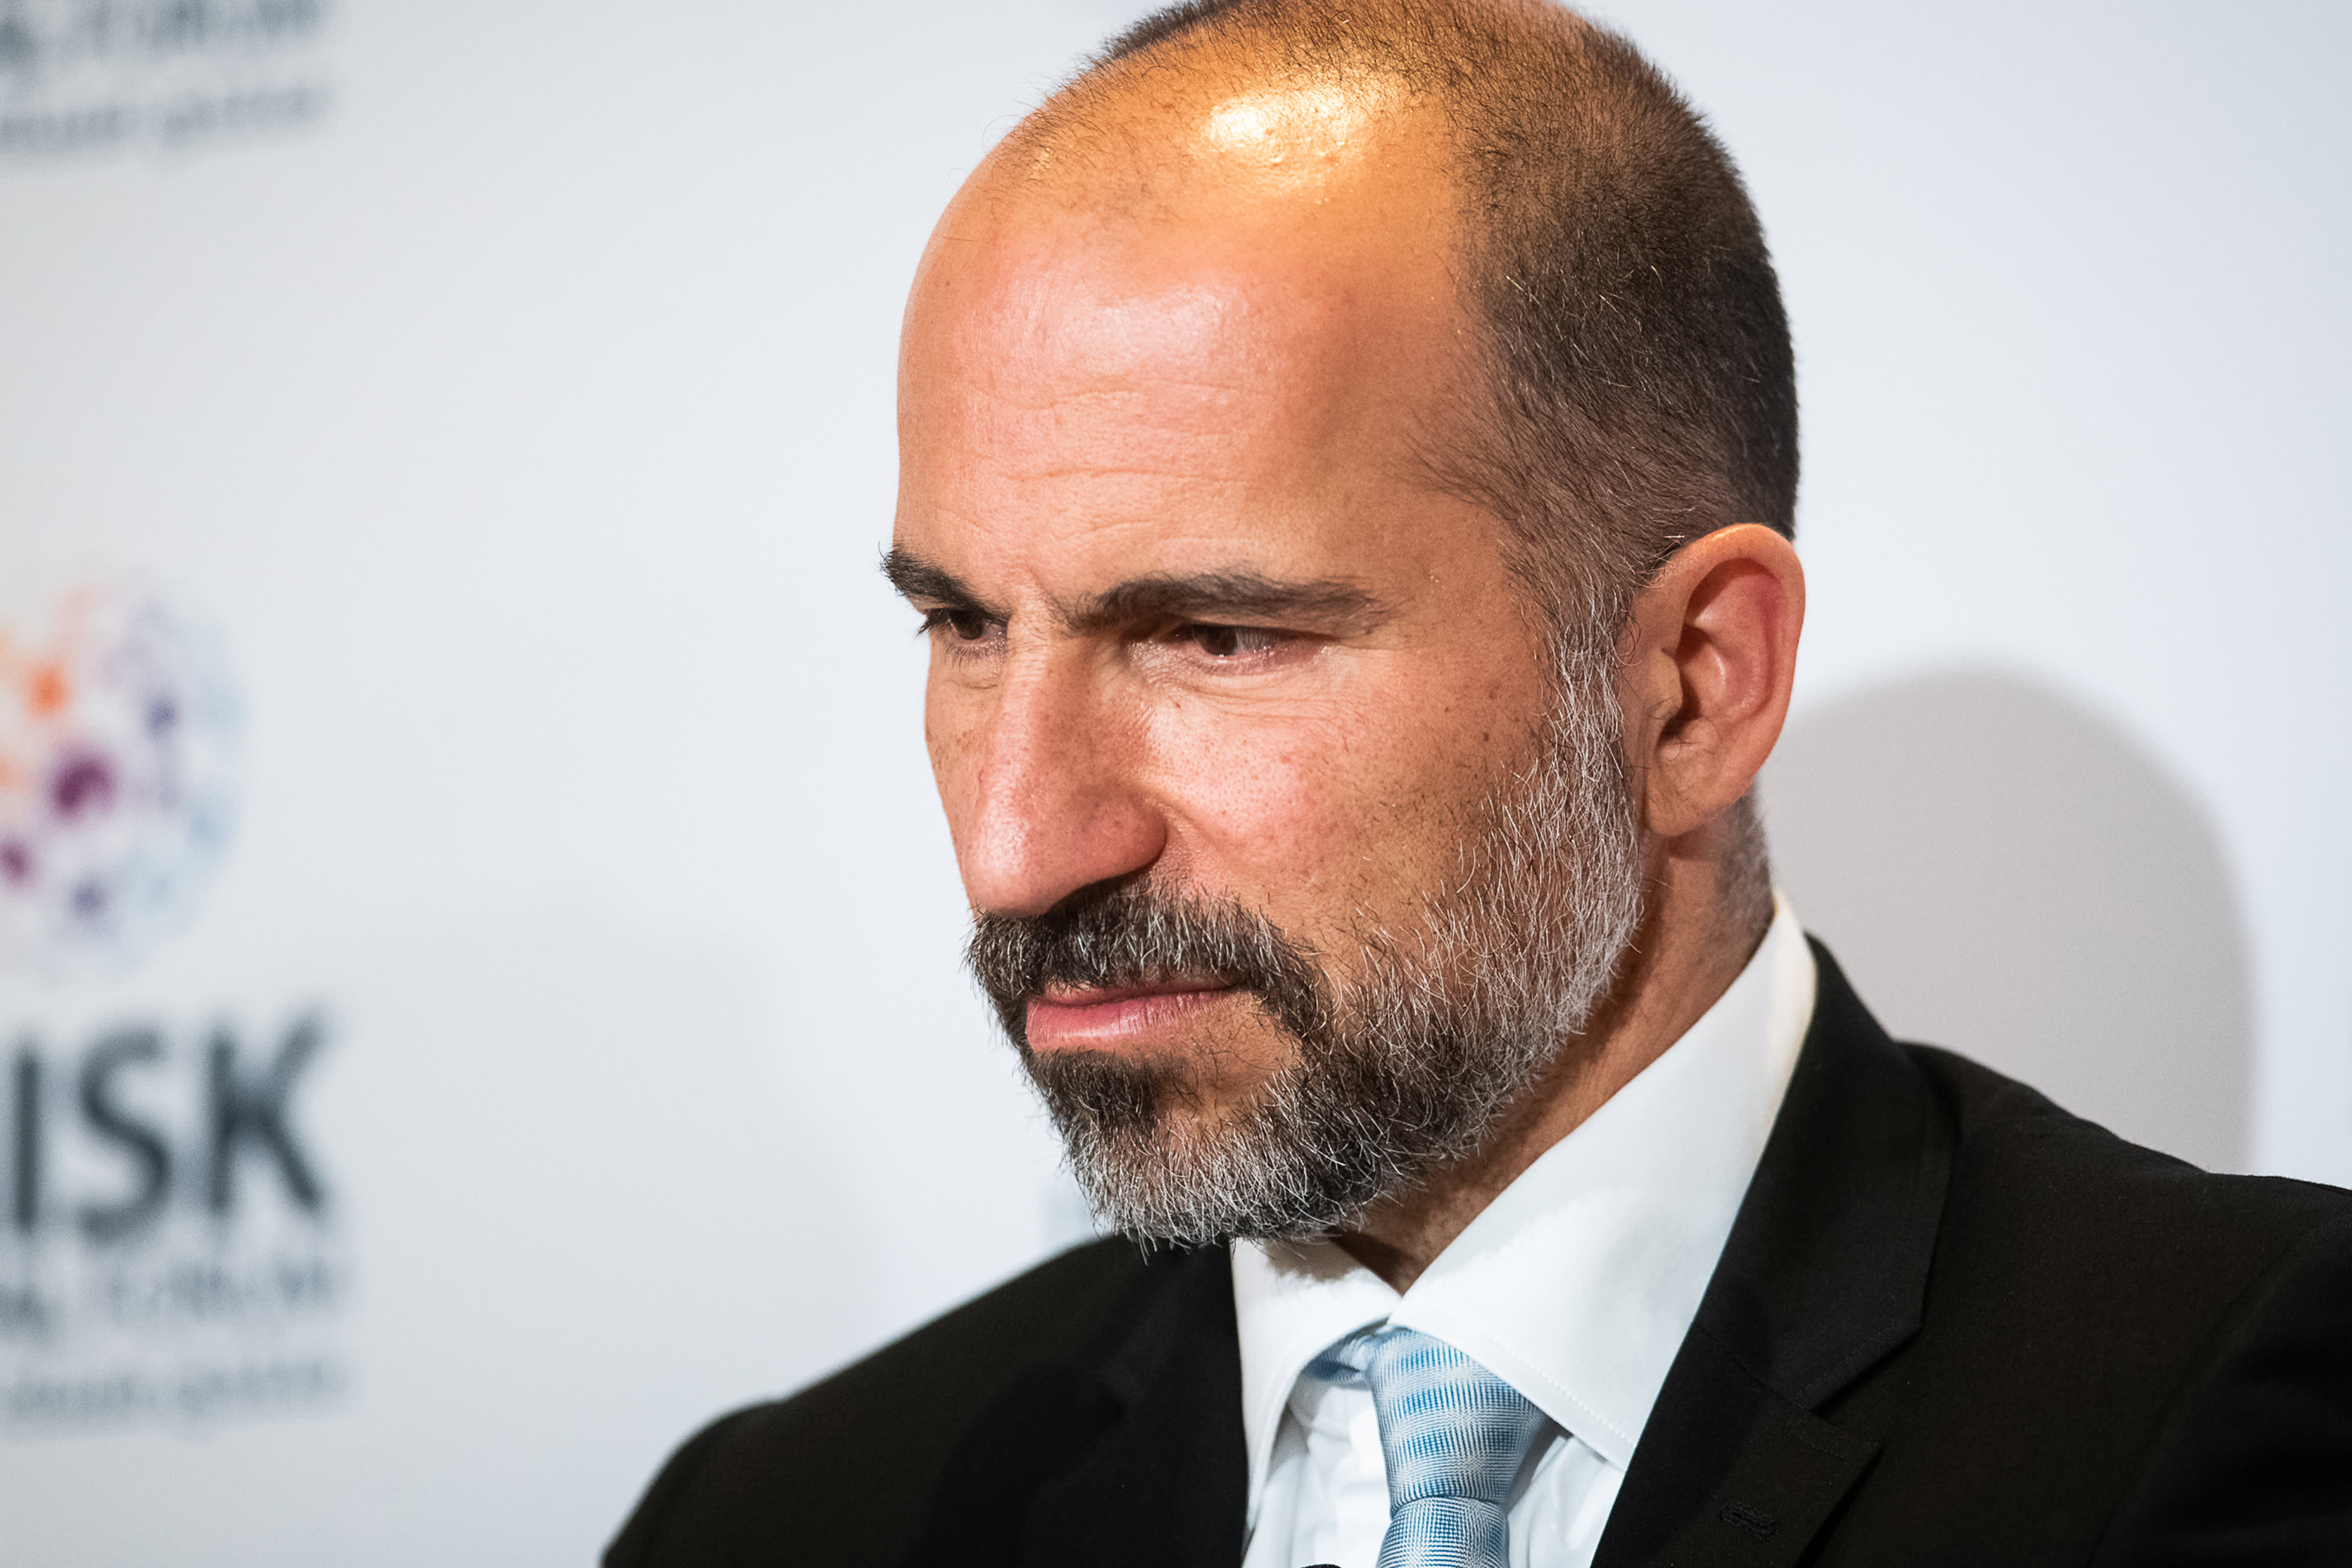 Uber falls to all-time low as investors grow more skeptical